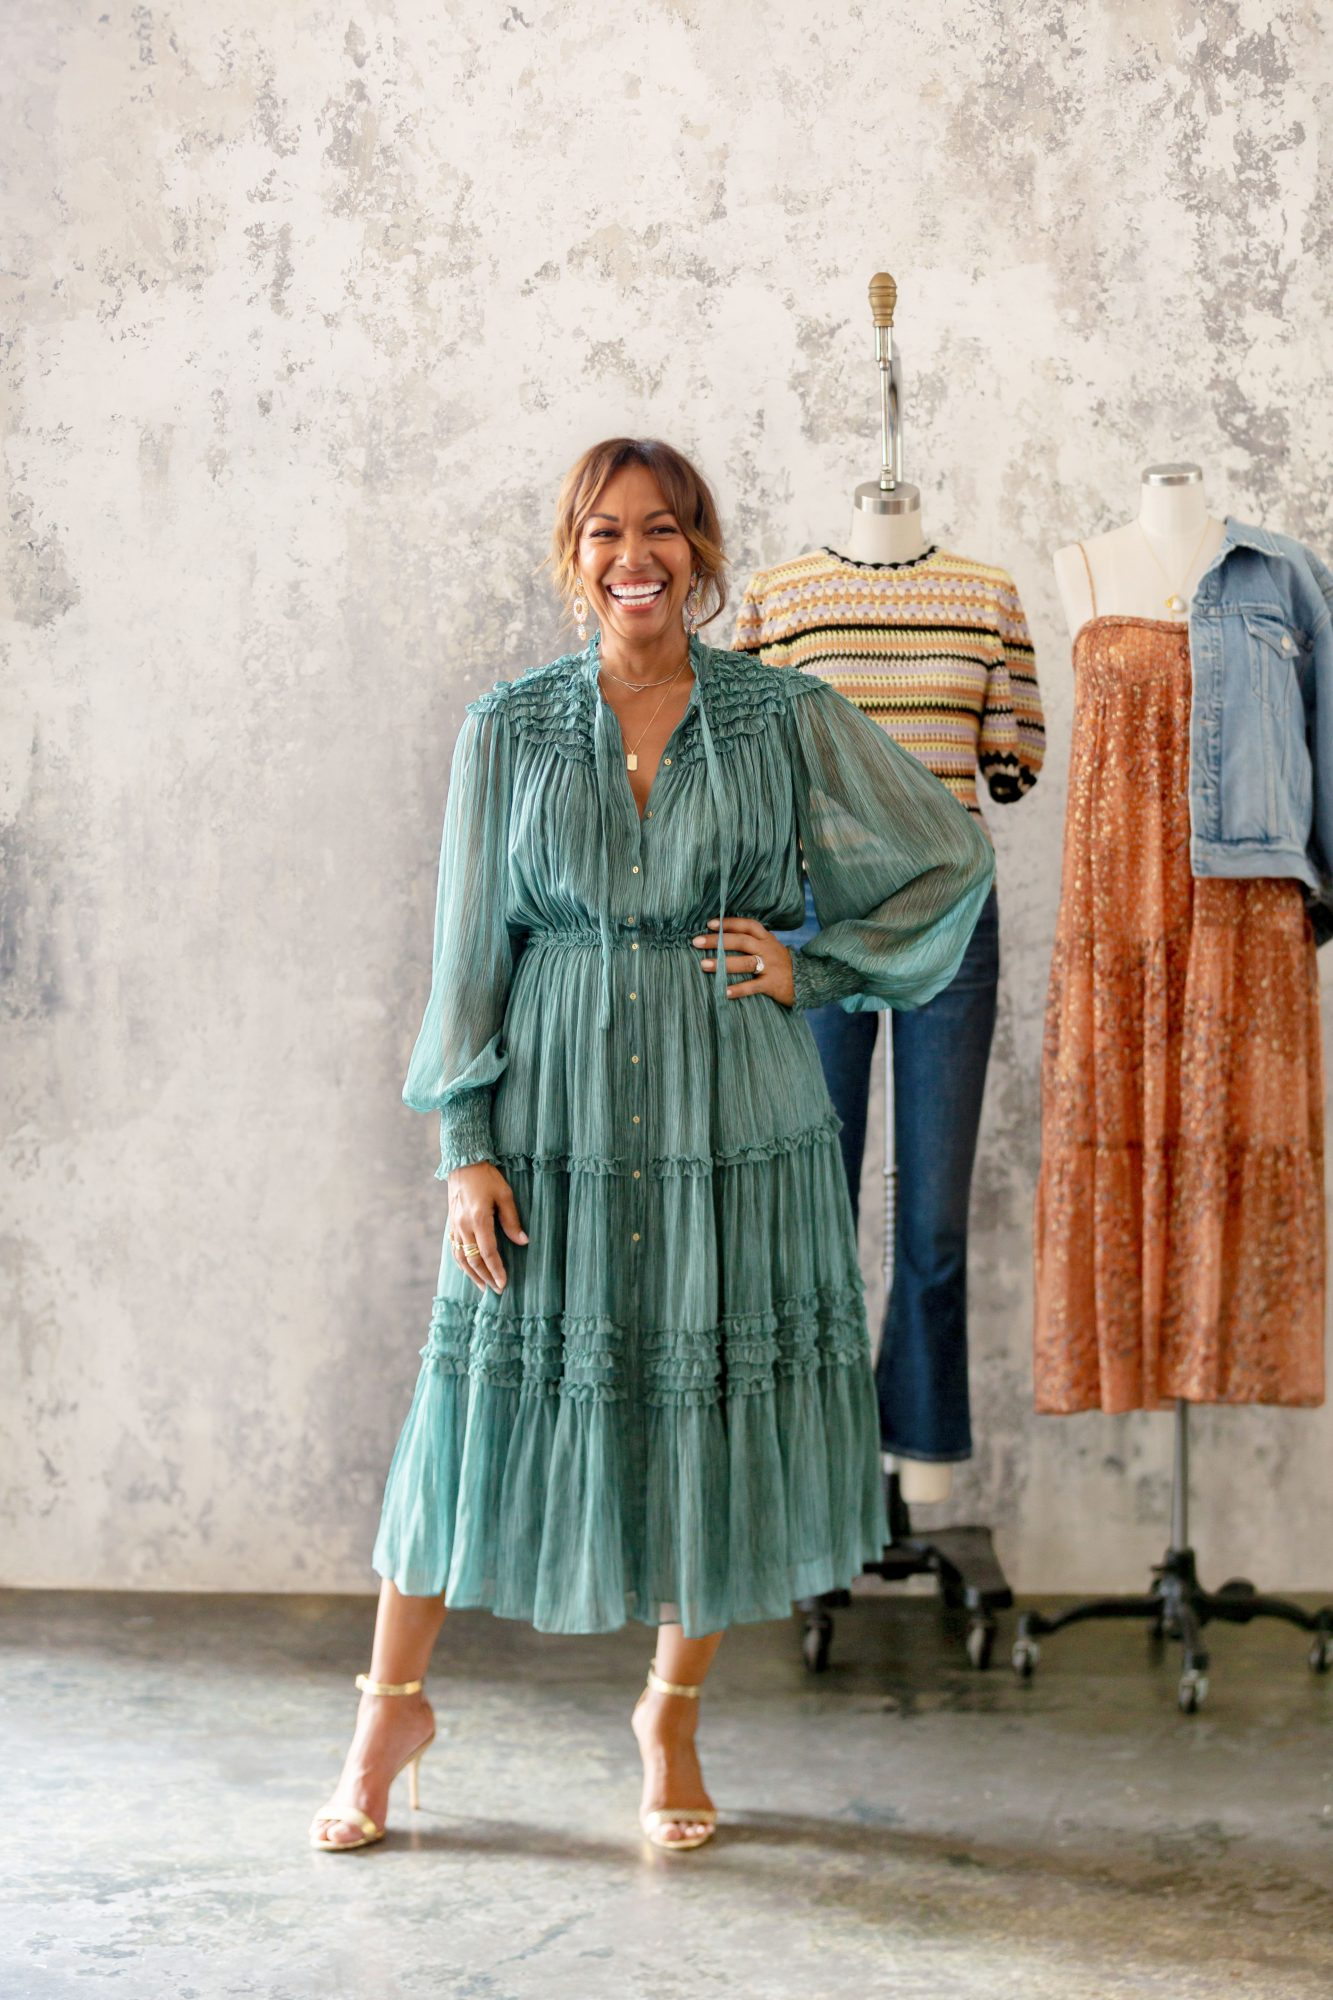 2021 Southern Living Tastemaker: Kimberly Lewis